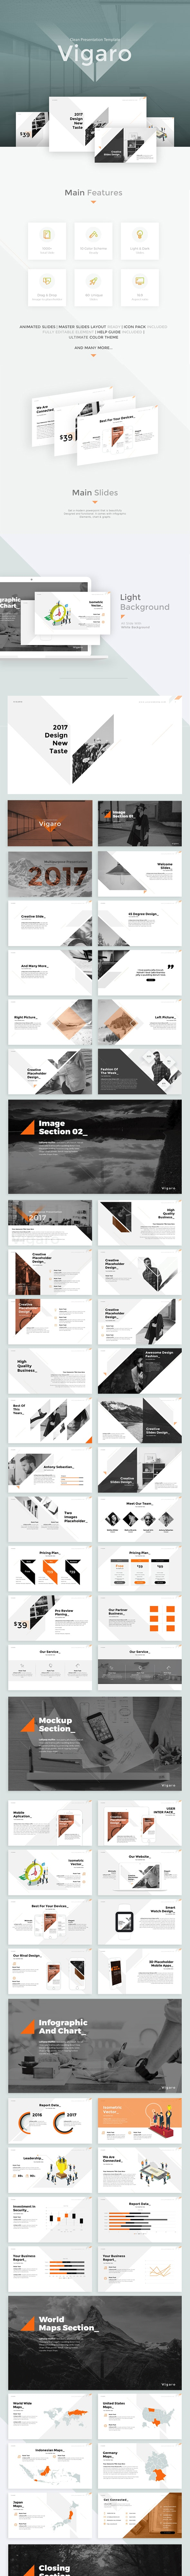 Vigaro Powerpoint Template - Business PowerPoint Templates